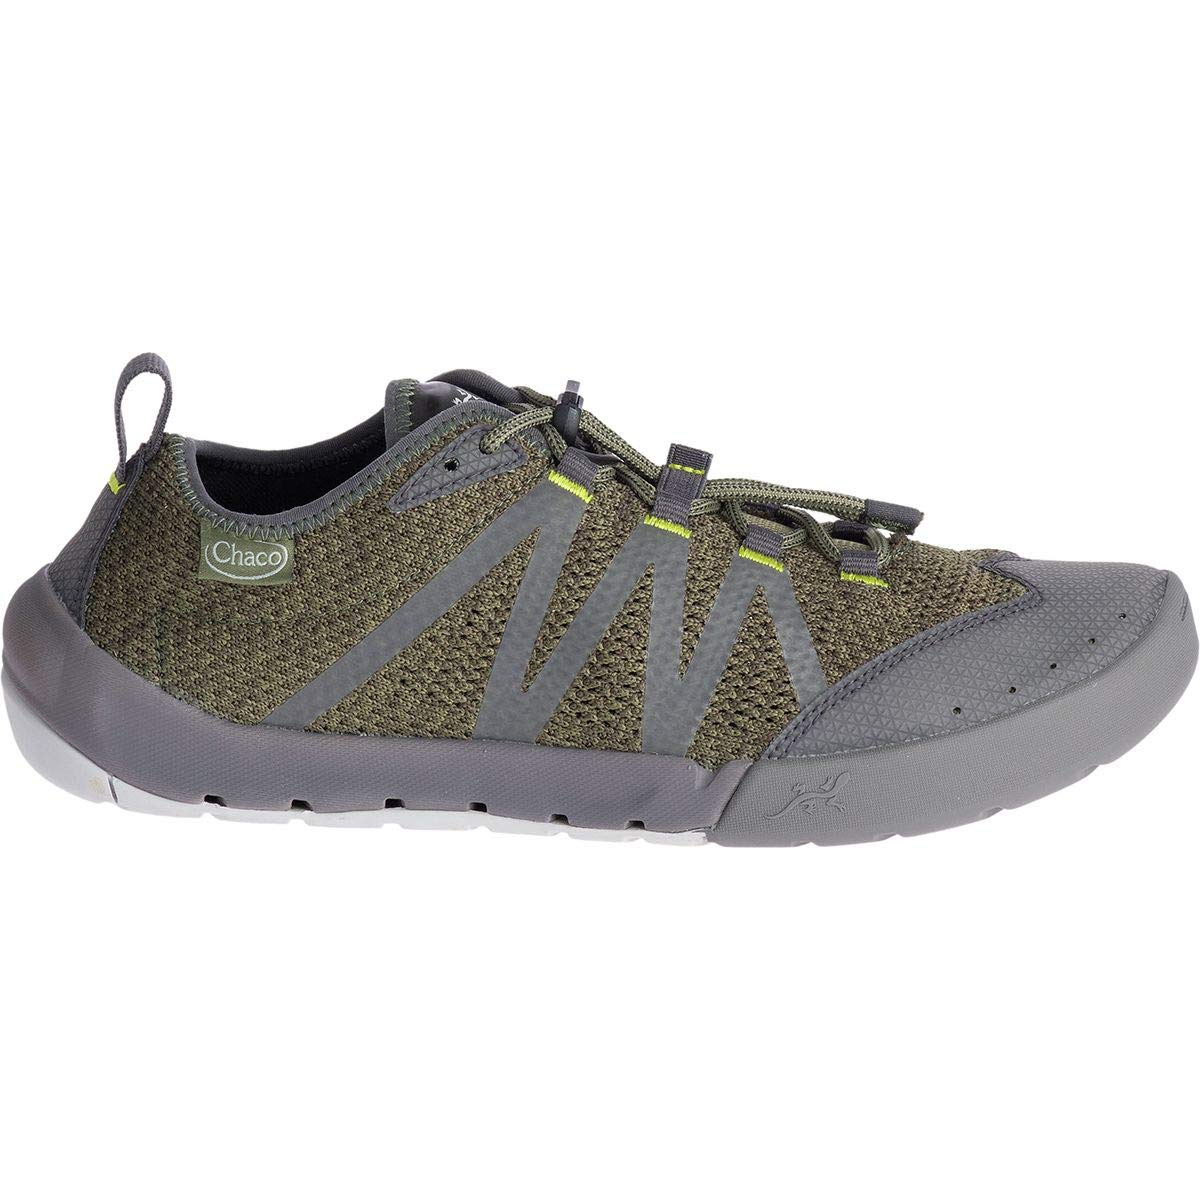 Chaco Torrent Pro Water Shoe - Men's Hunter, 7.5